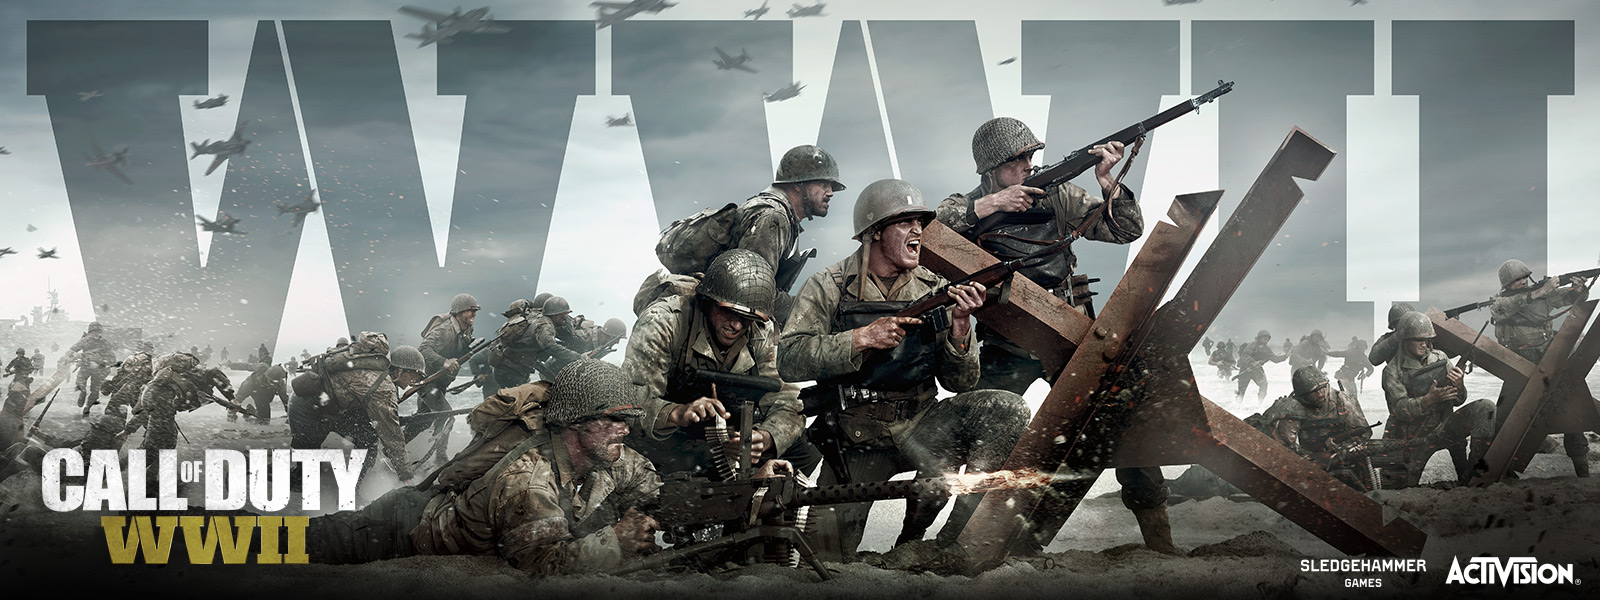 Edición Digital Deluxe de Call of Duty WWII